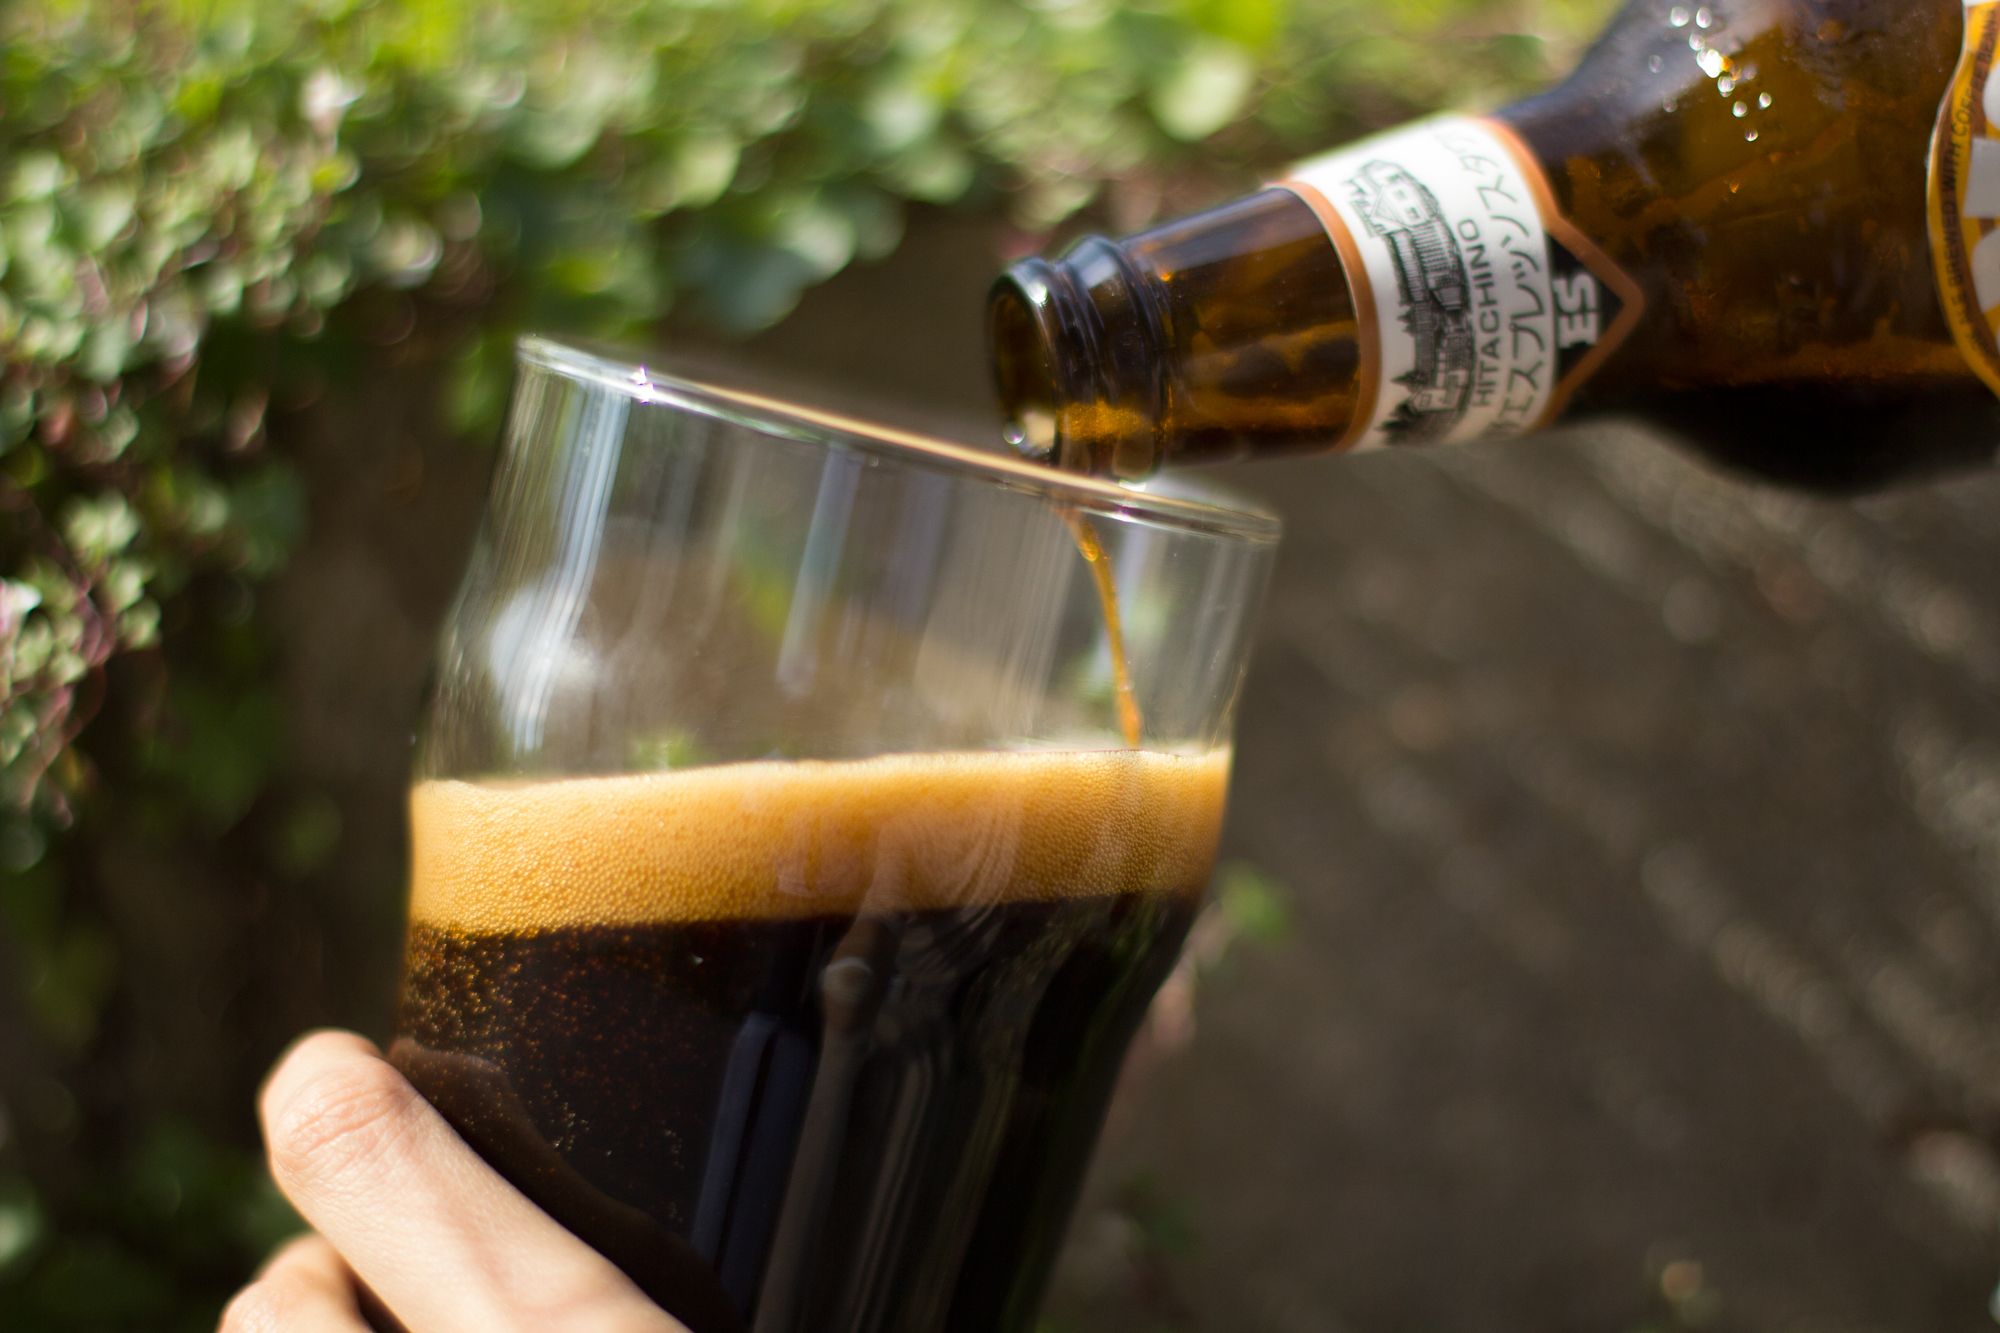 Hitachino Nest: Espresso Stout has an ABV of 7.5% and pours very smooth.